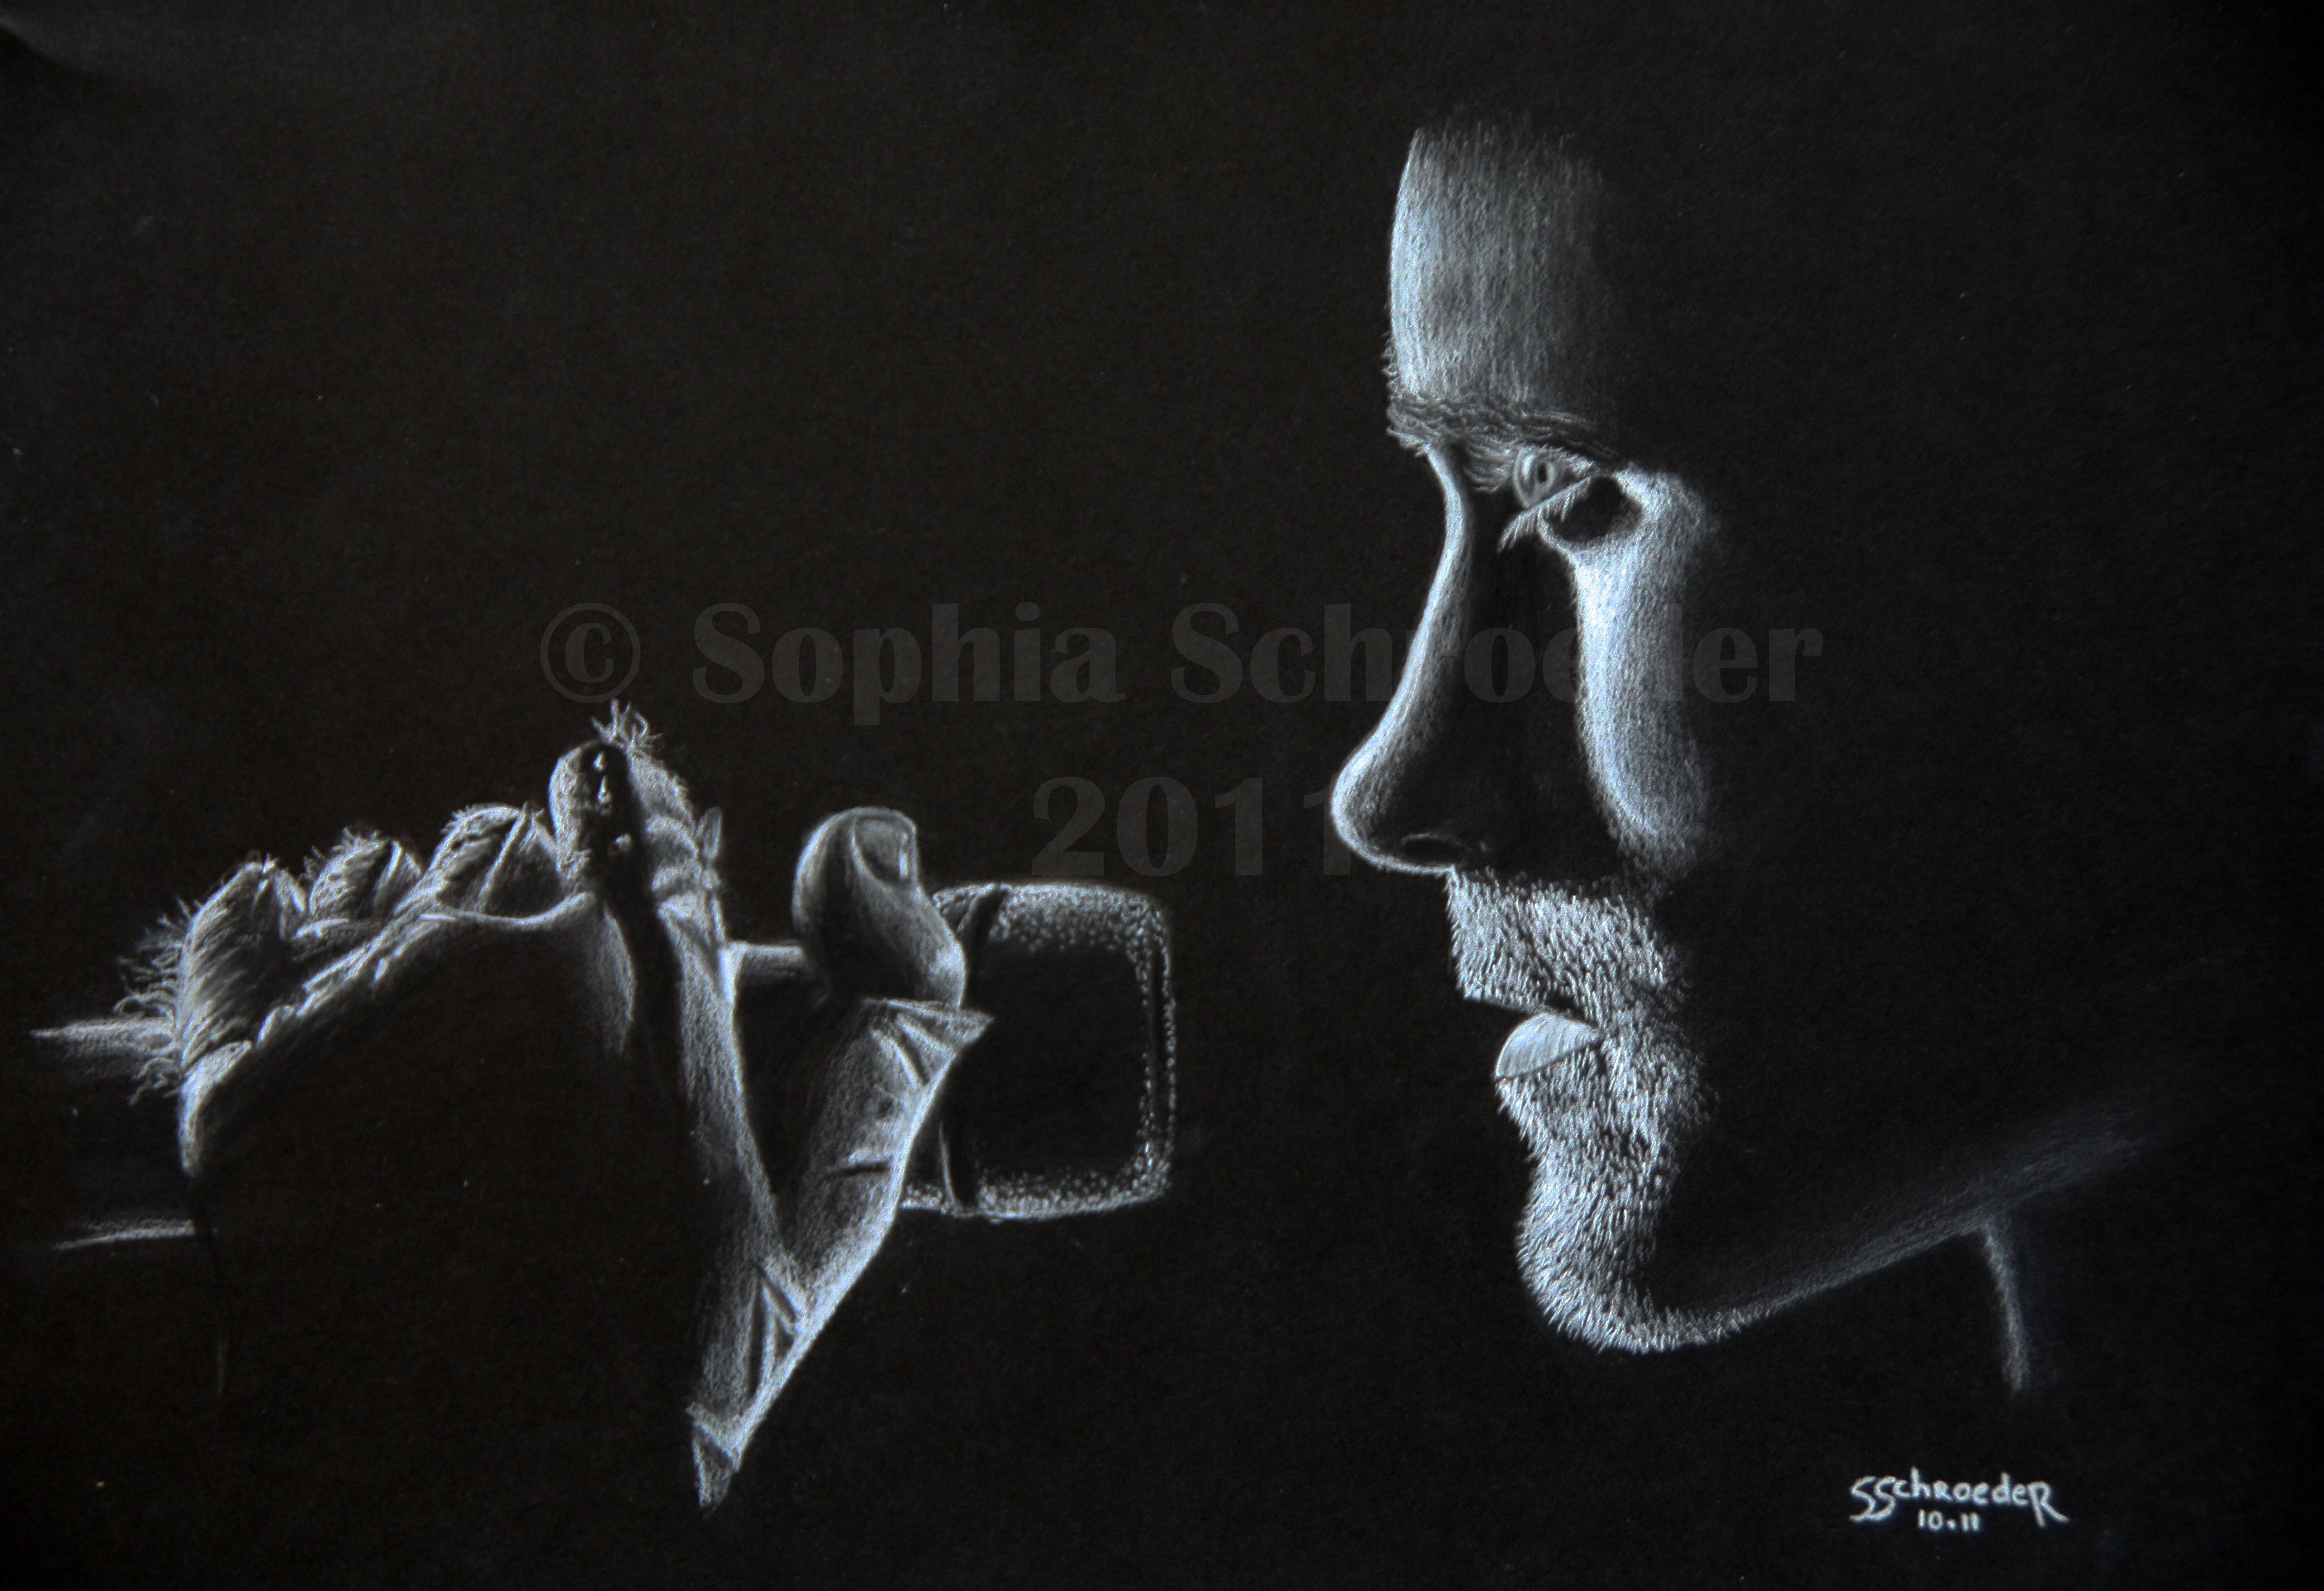 Jared Leto - Closer to the Edge by Scarlett-Serenity on ...